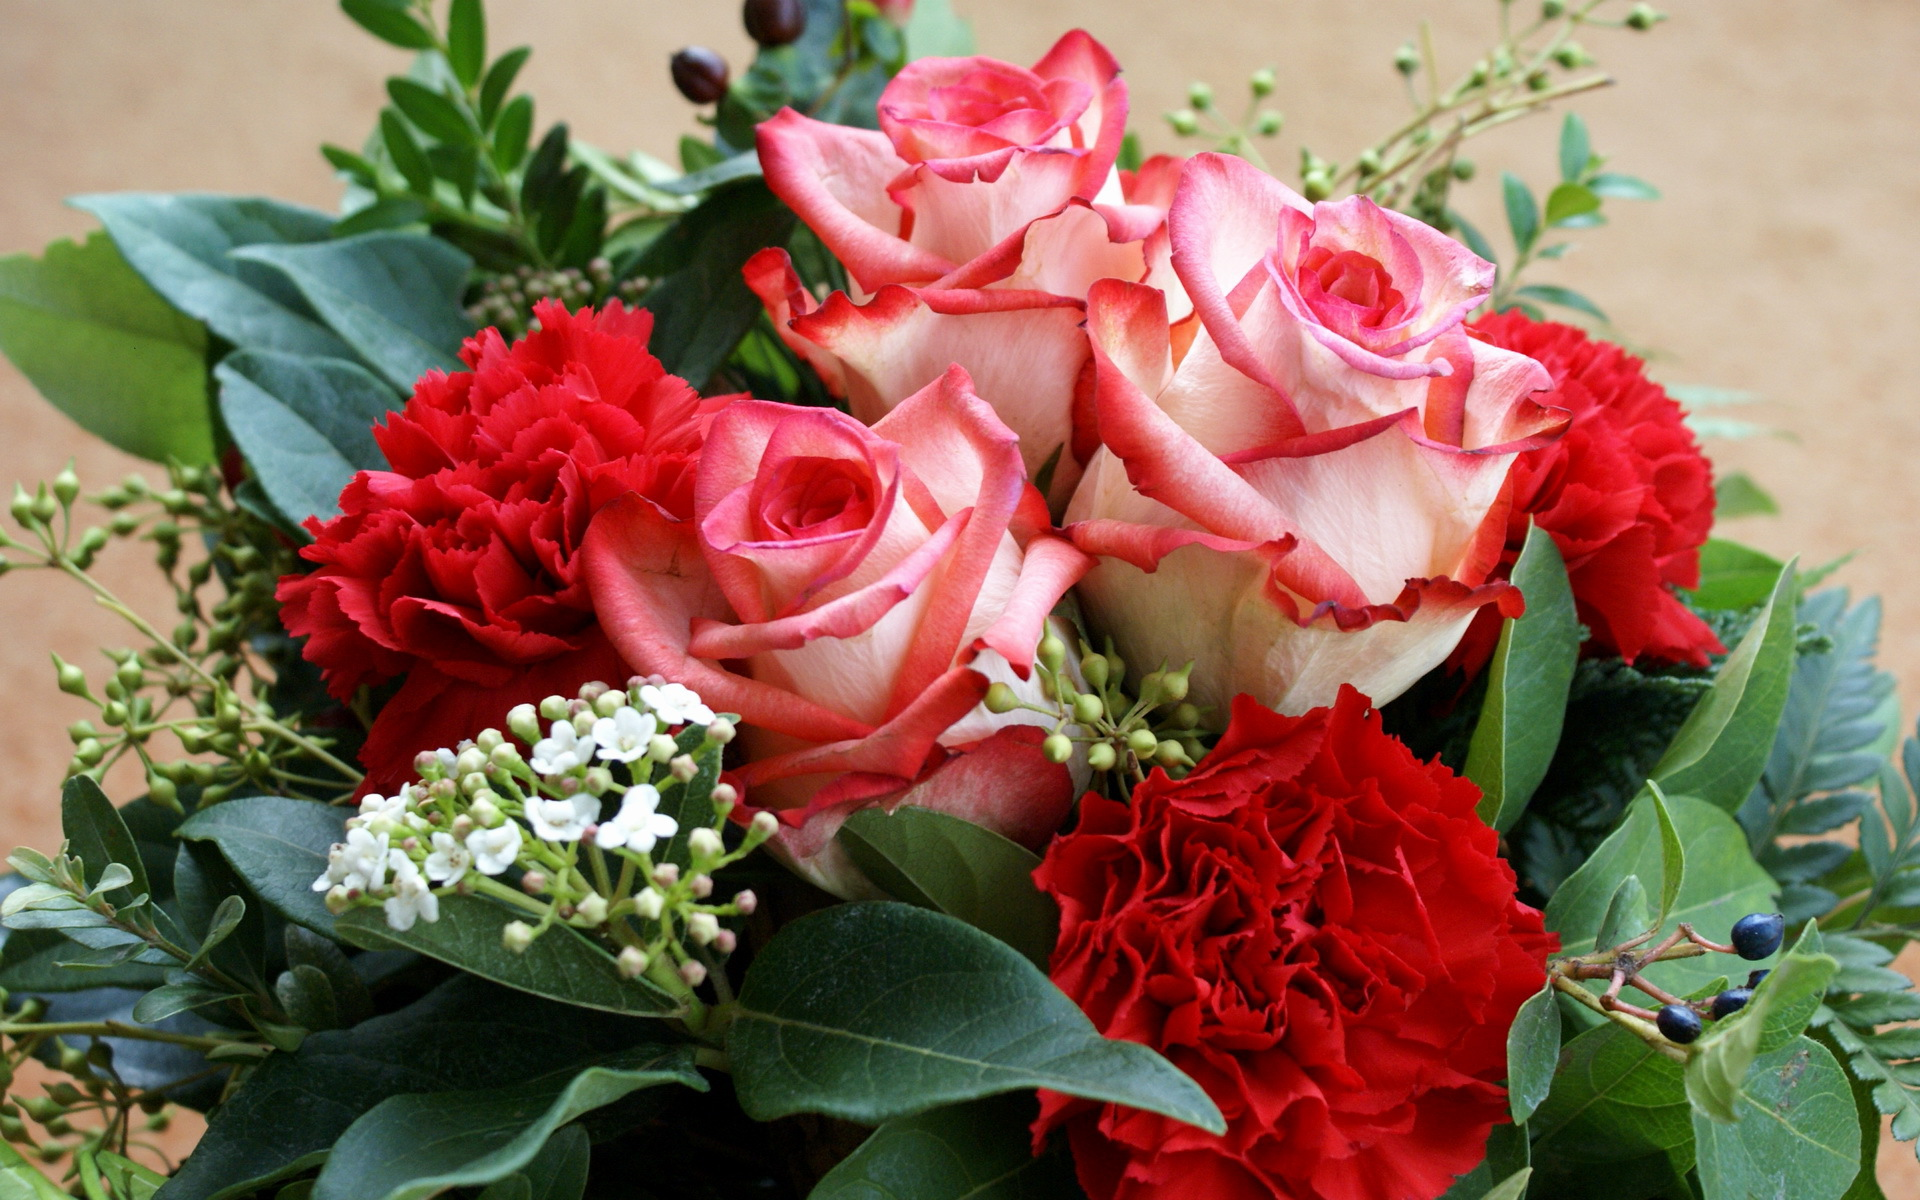 36082 download wallpaper Plants, Flowers, Roses, Bouquets screensavers and pictures for free